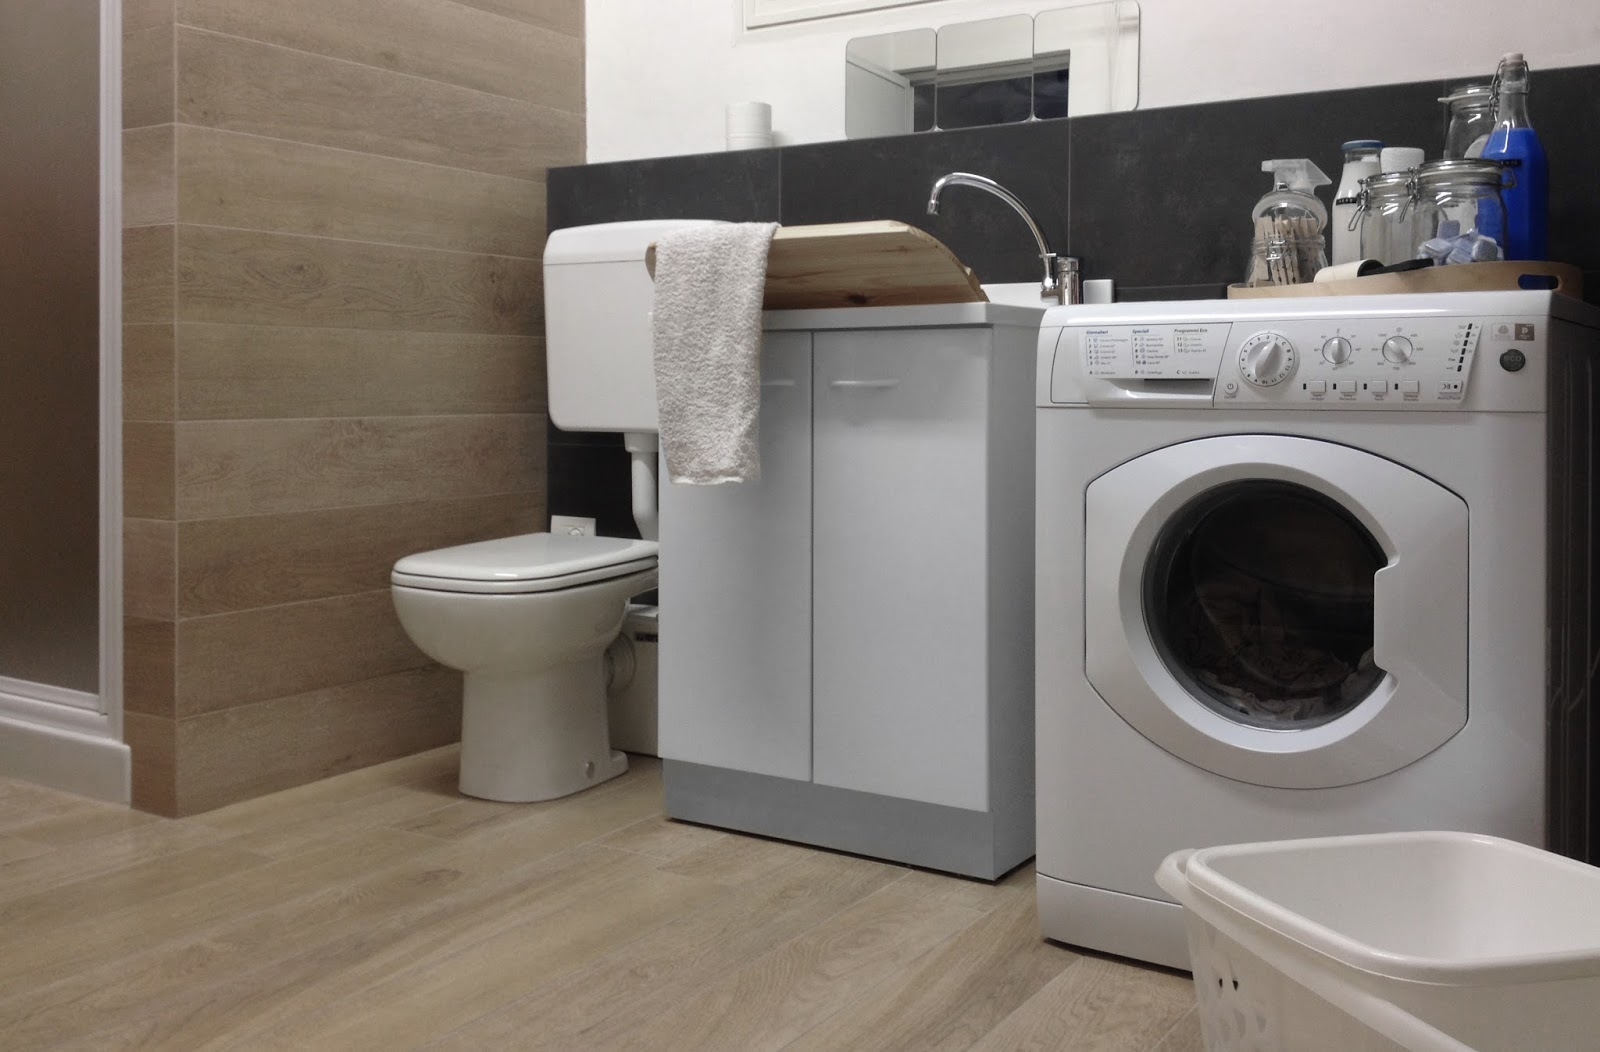 Details of us laundry room project la nostra lavanderia - Mobile lavanderia ikea ...